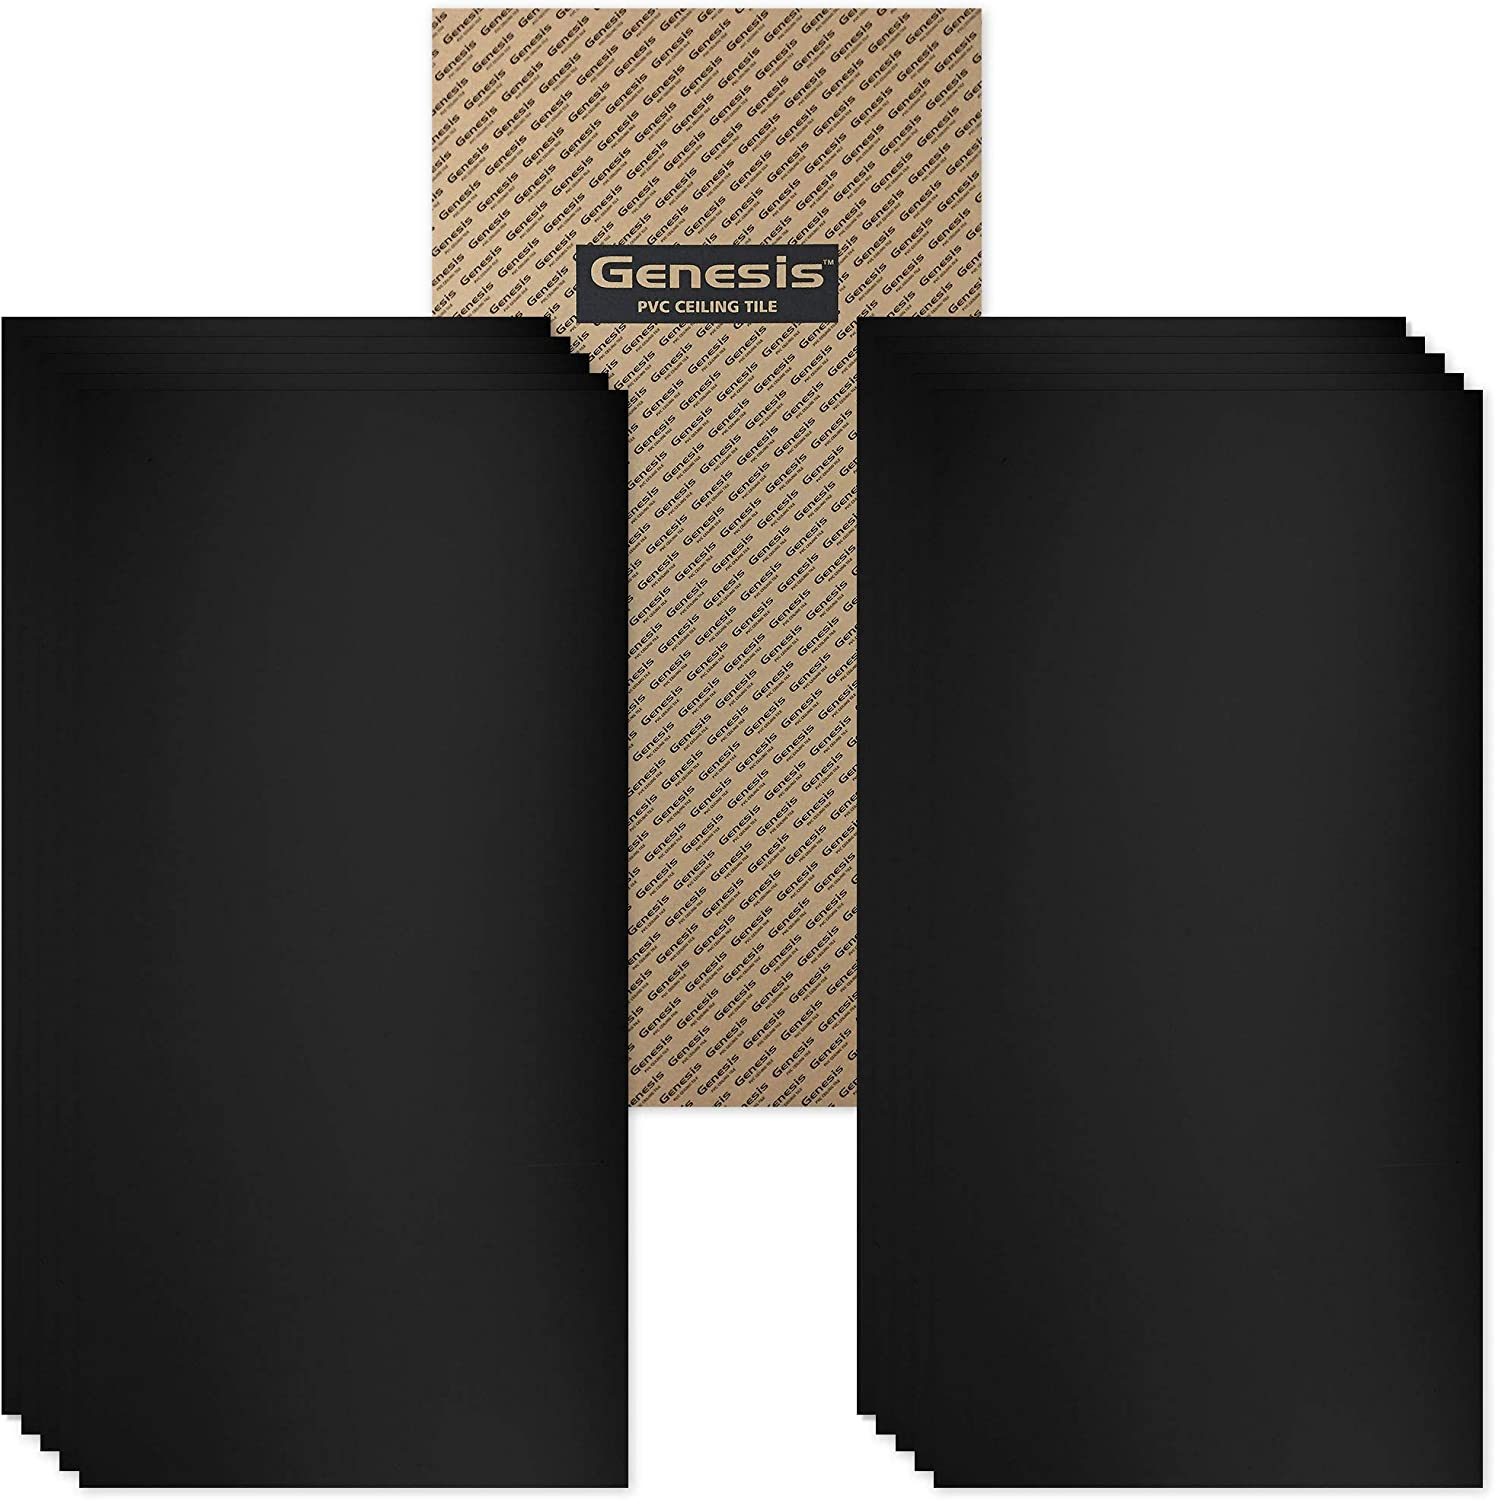 Washable and Fire-Rated Genesis Smooth Pro Black Ceiling Tiles Waterproof Easy Drop-in Installation 6 x 6 Sample High-Grade PVC to Prevent Breakage